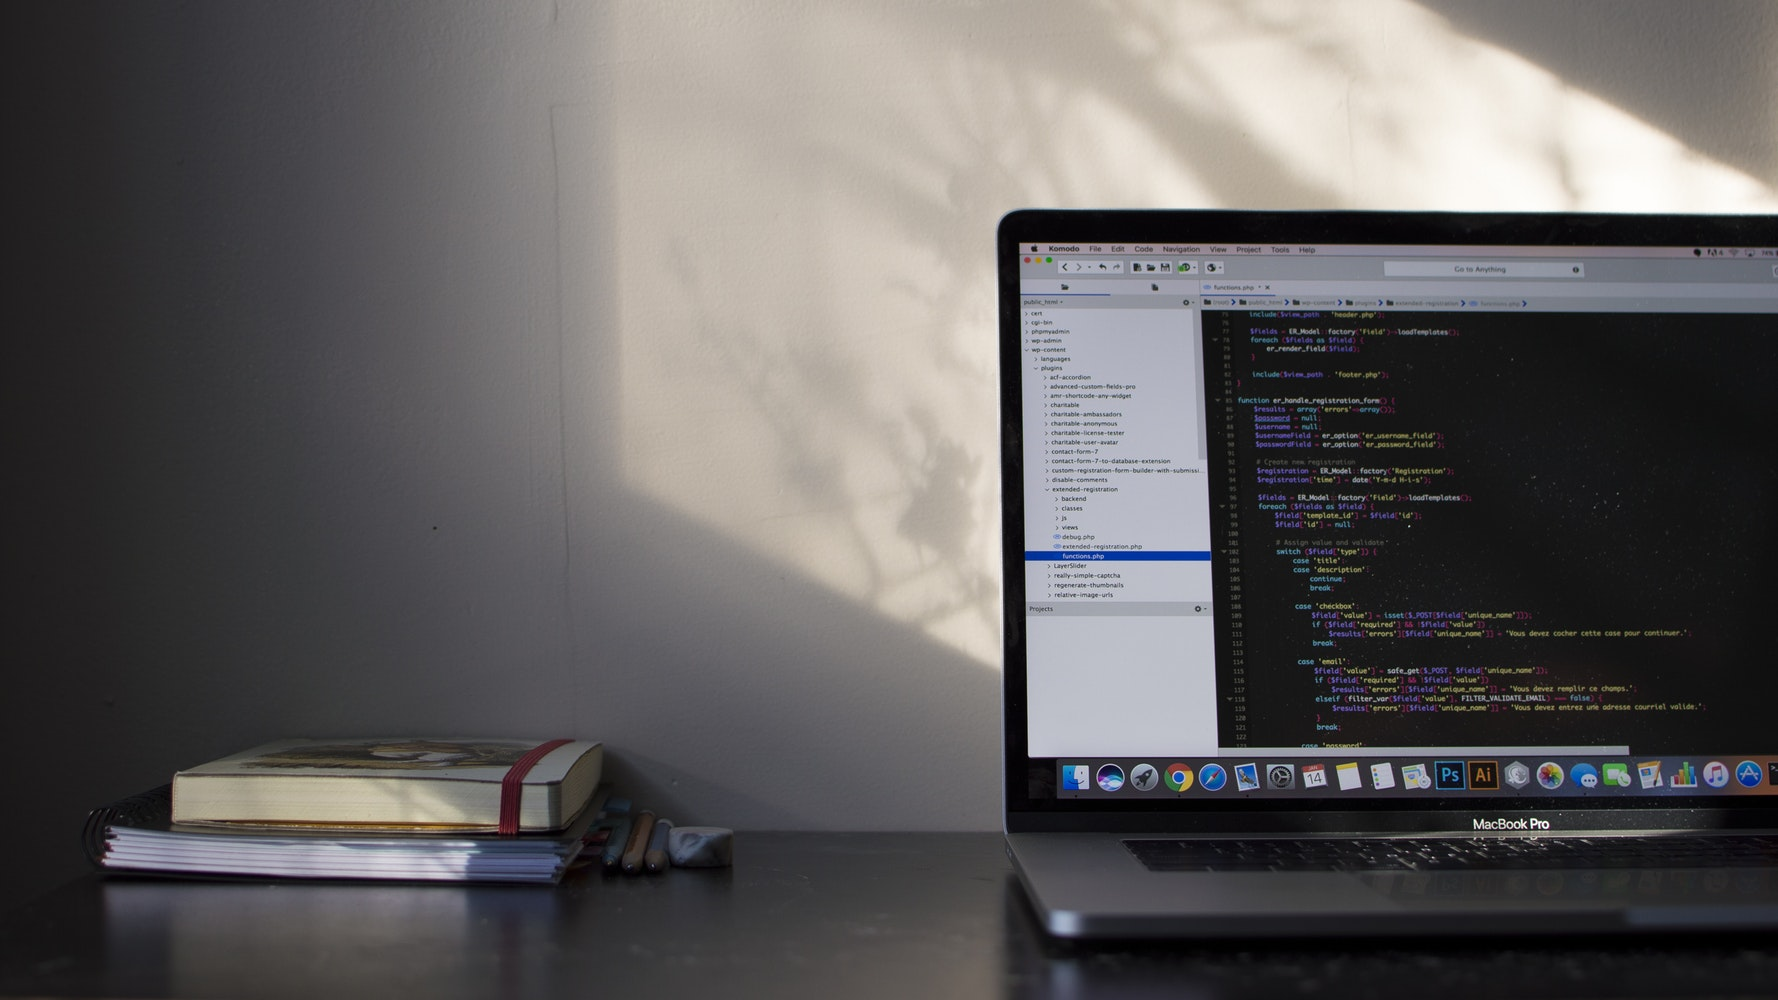 My 3 Biggest Takeaways From Running A Successful Software Consultancy